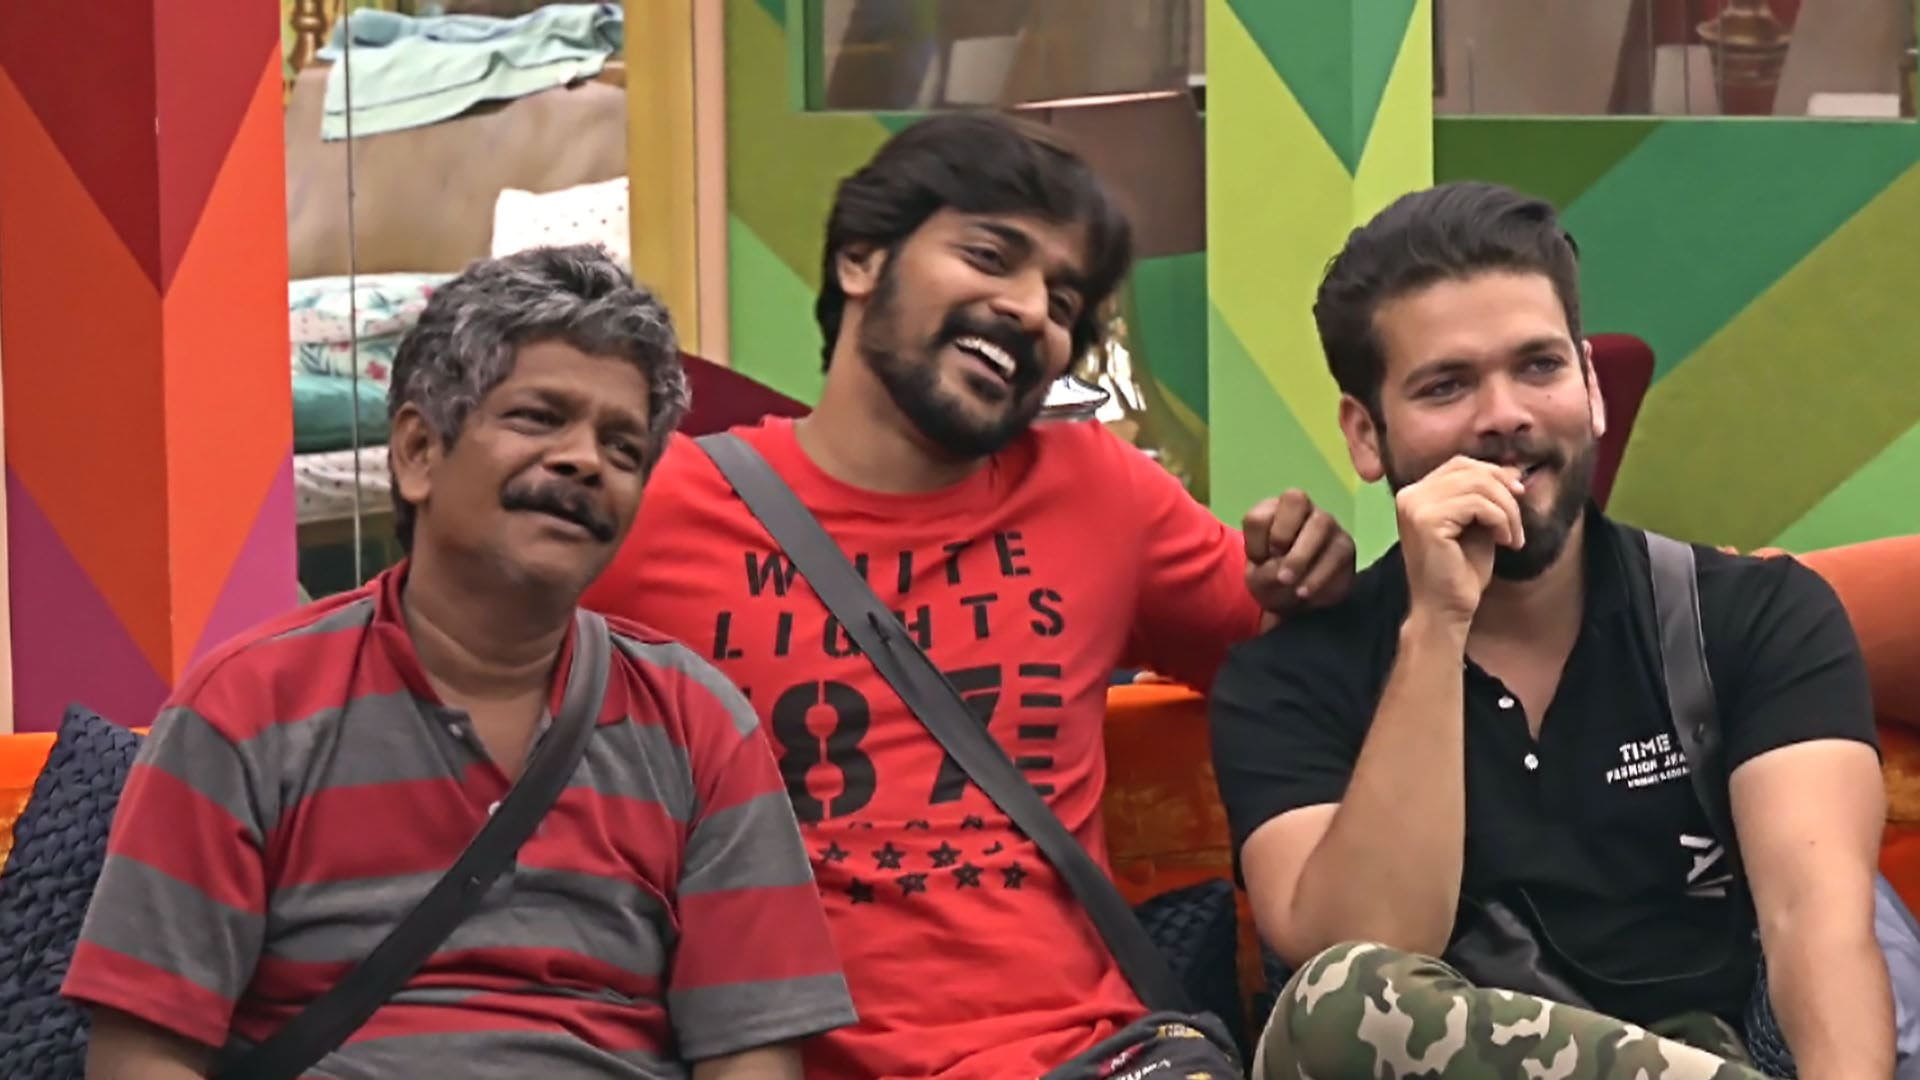 Bigg Boss - Season 1 Episode 45 : Day 44: A Secret Spy!